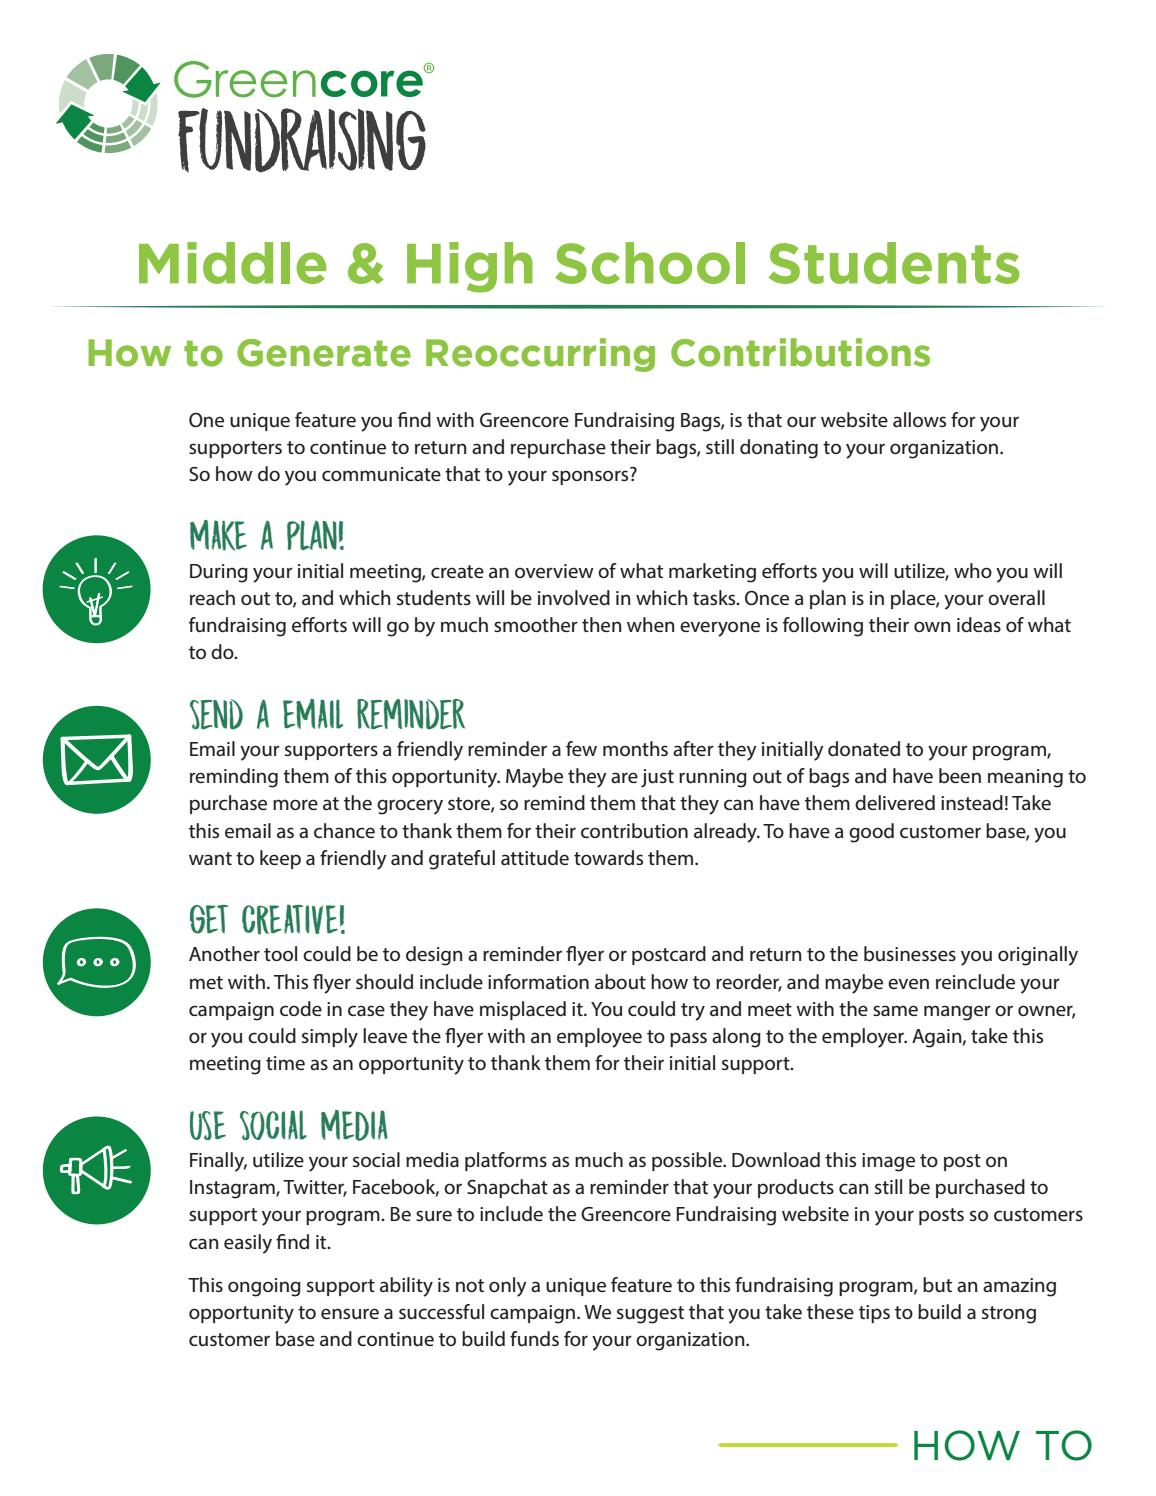 Greencore Fundraising Generating Reoccurring Contributions-Secondary